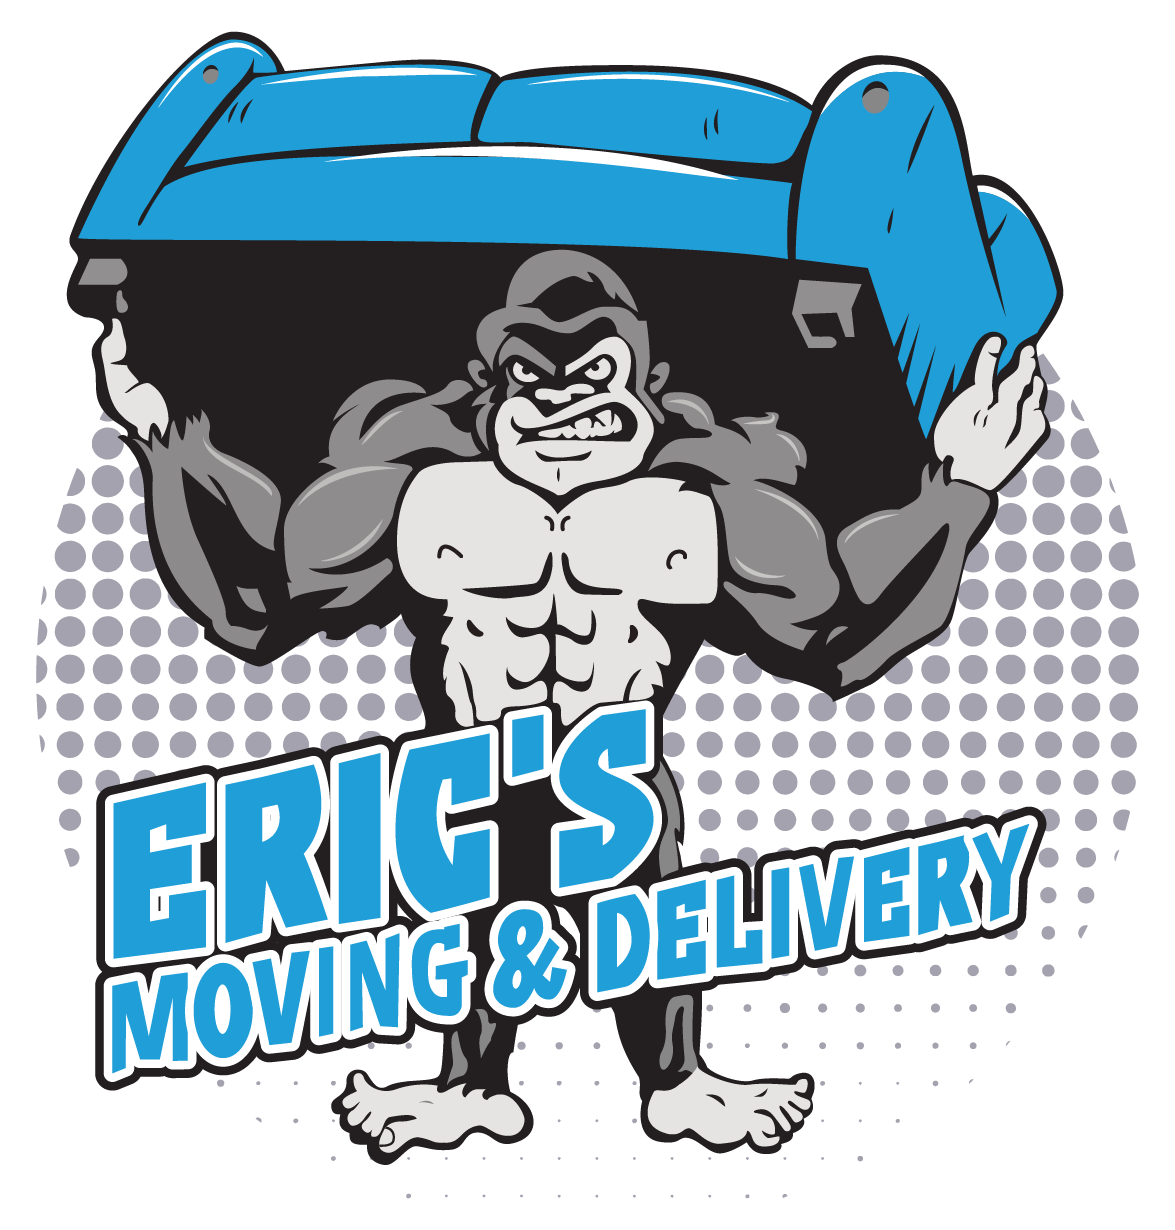 Erics moving and delivery